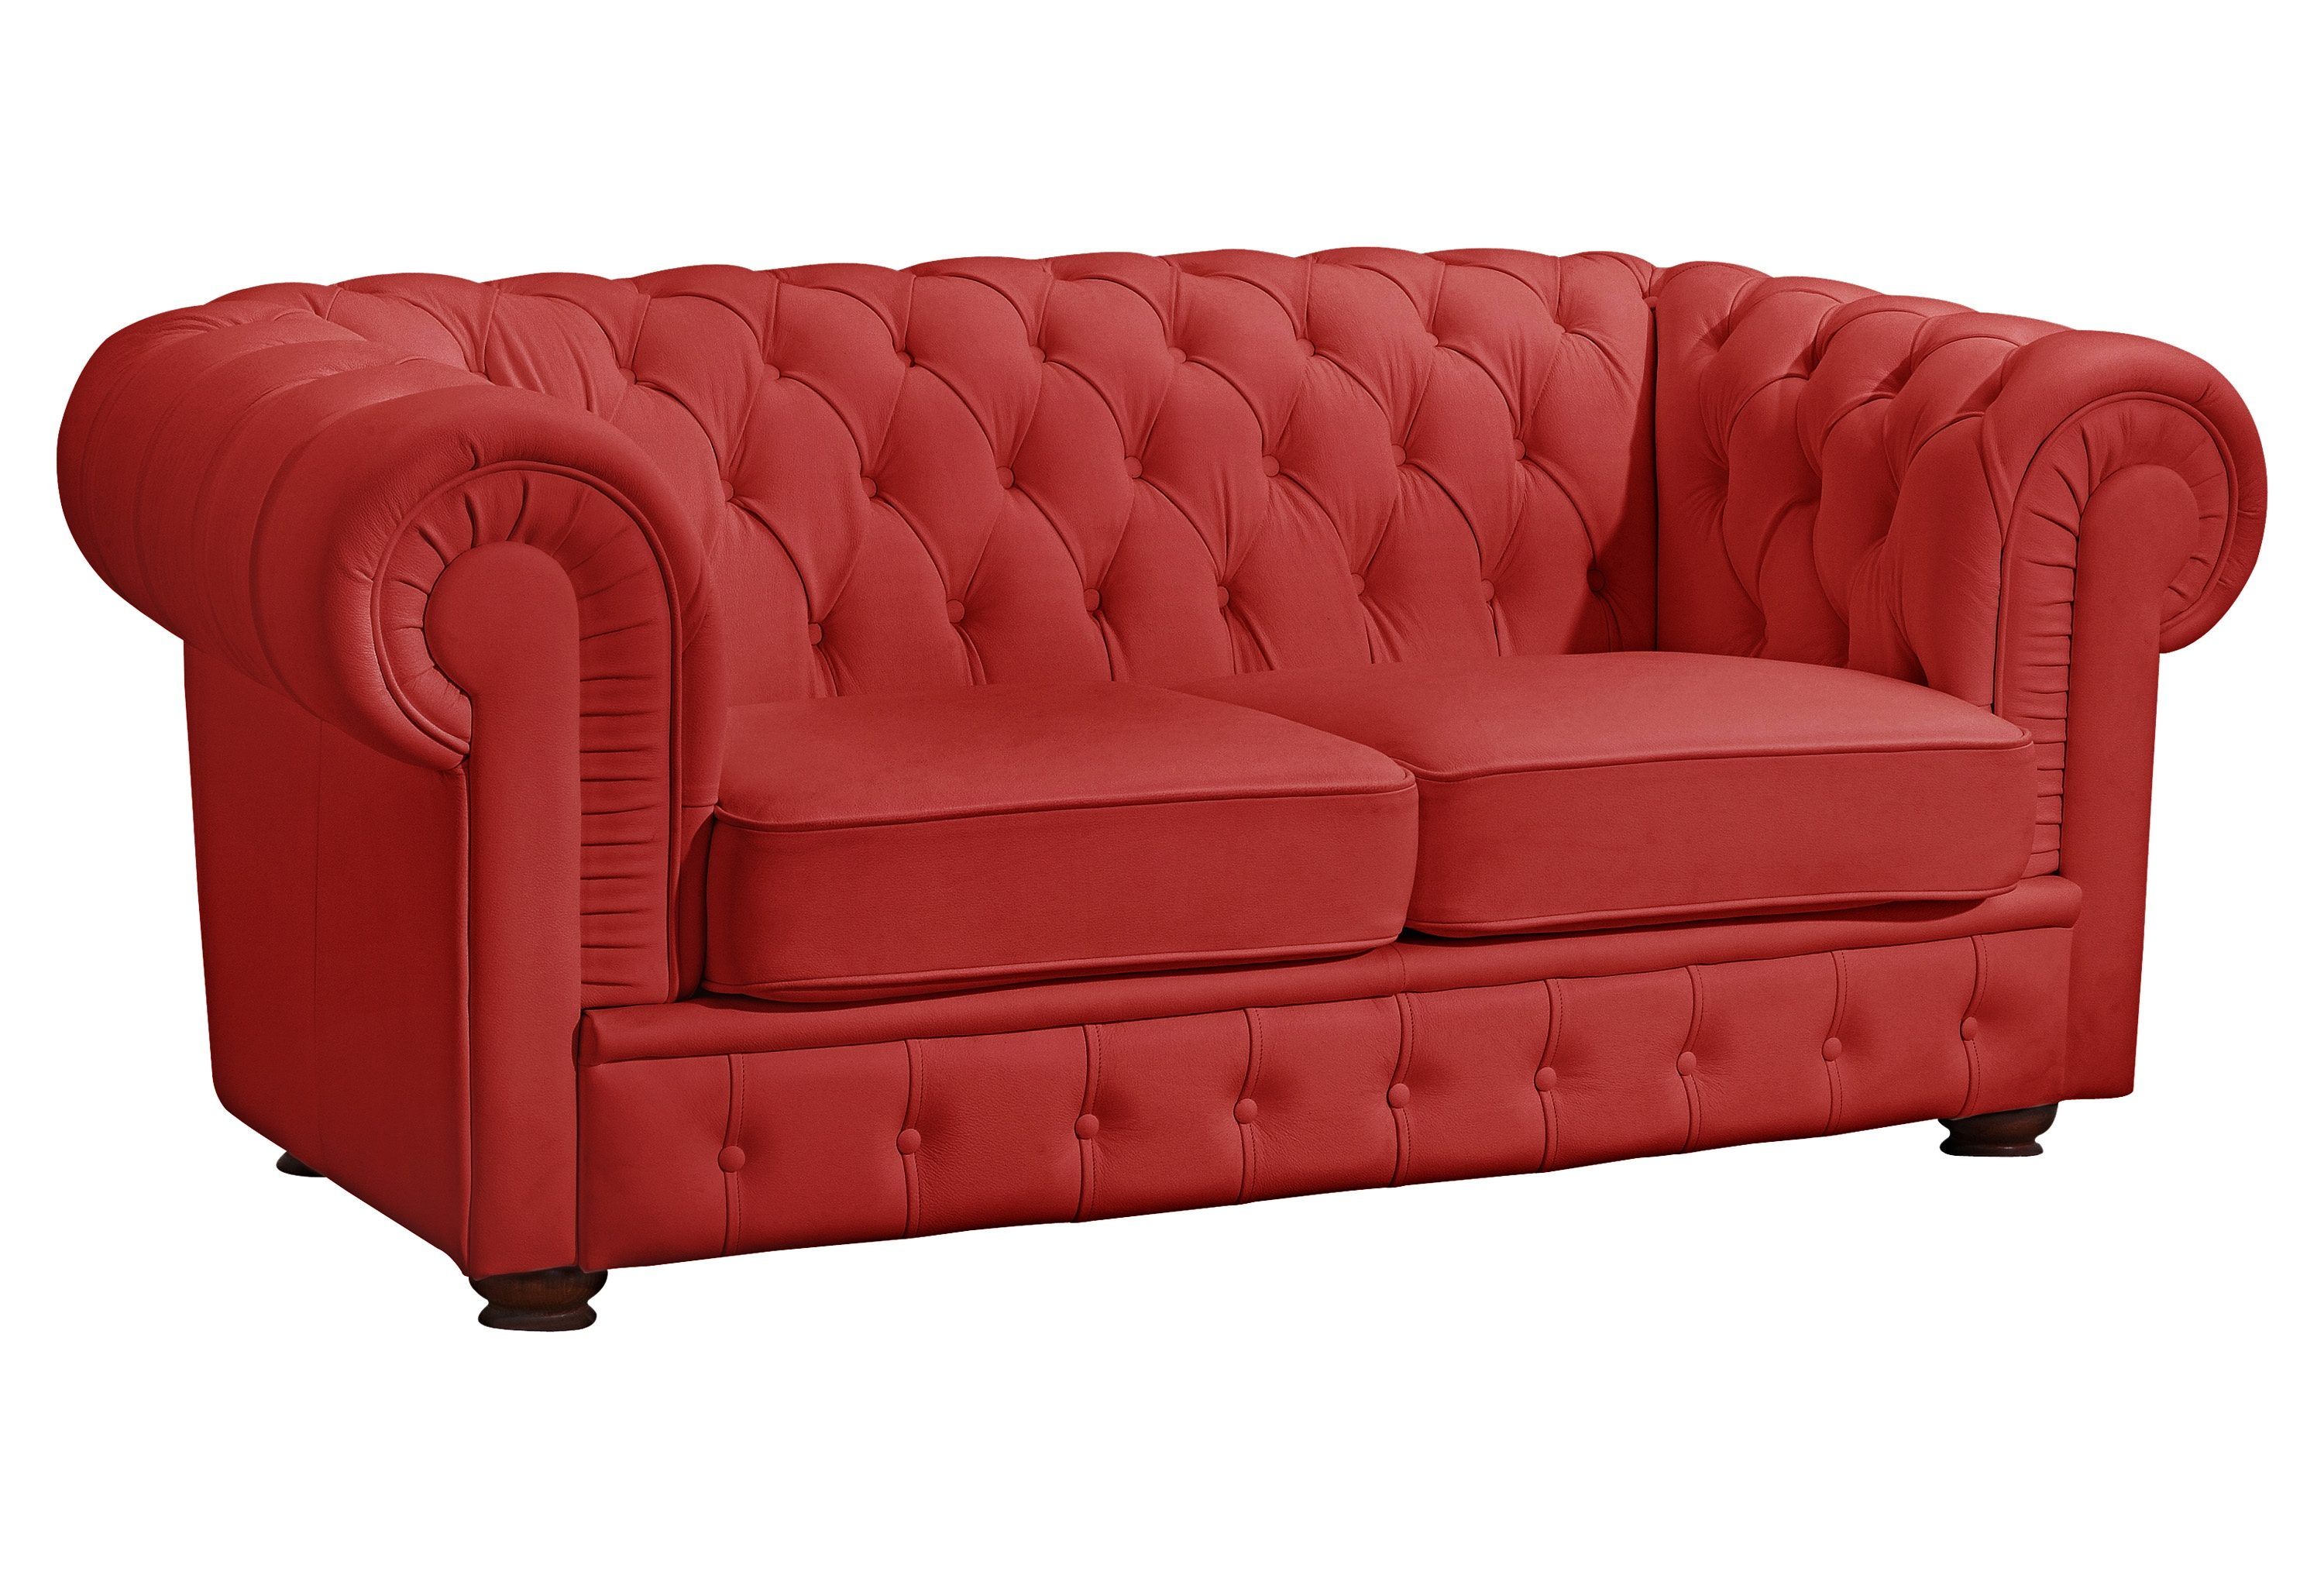 Max Winzer Sofa Windsor